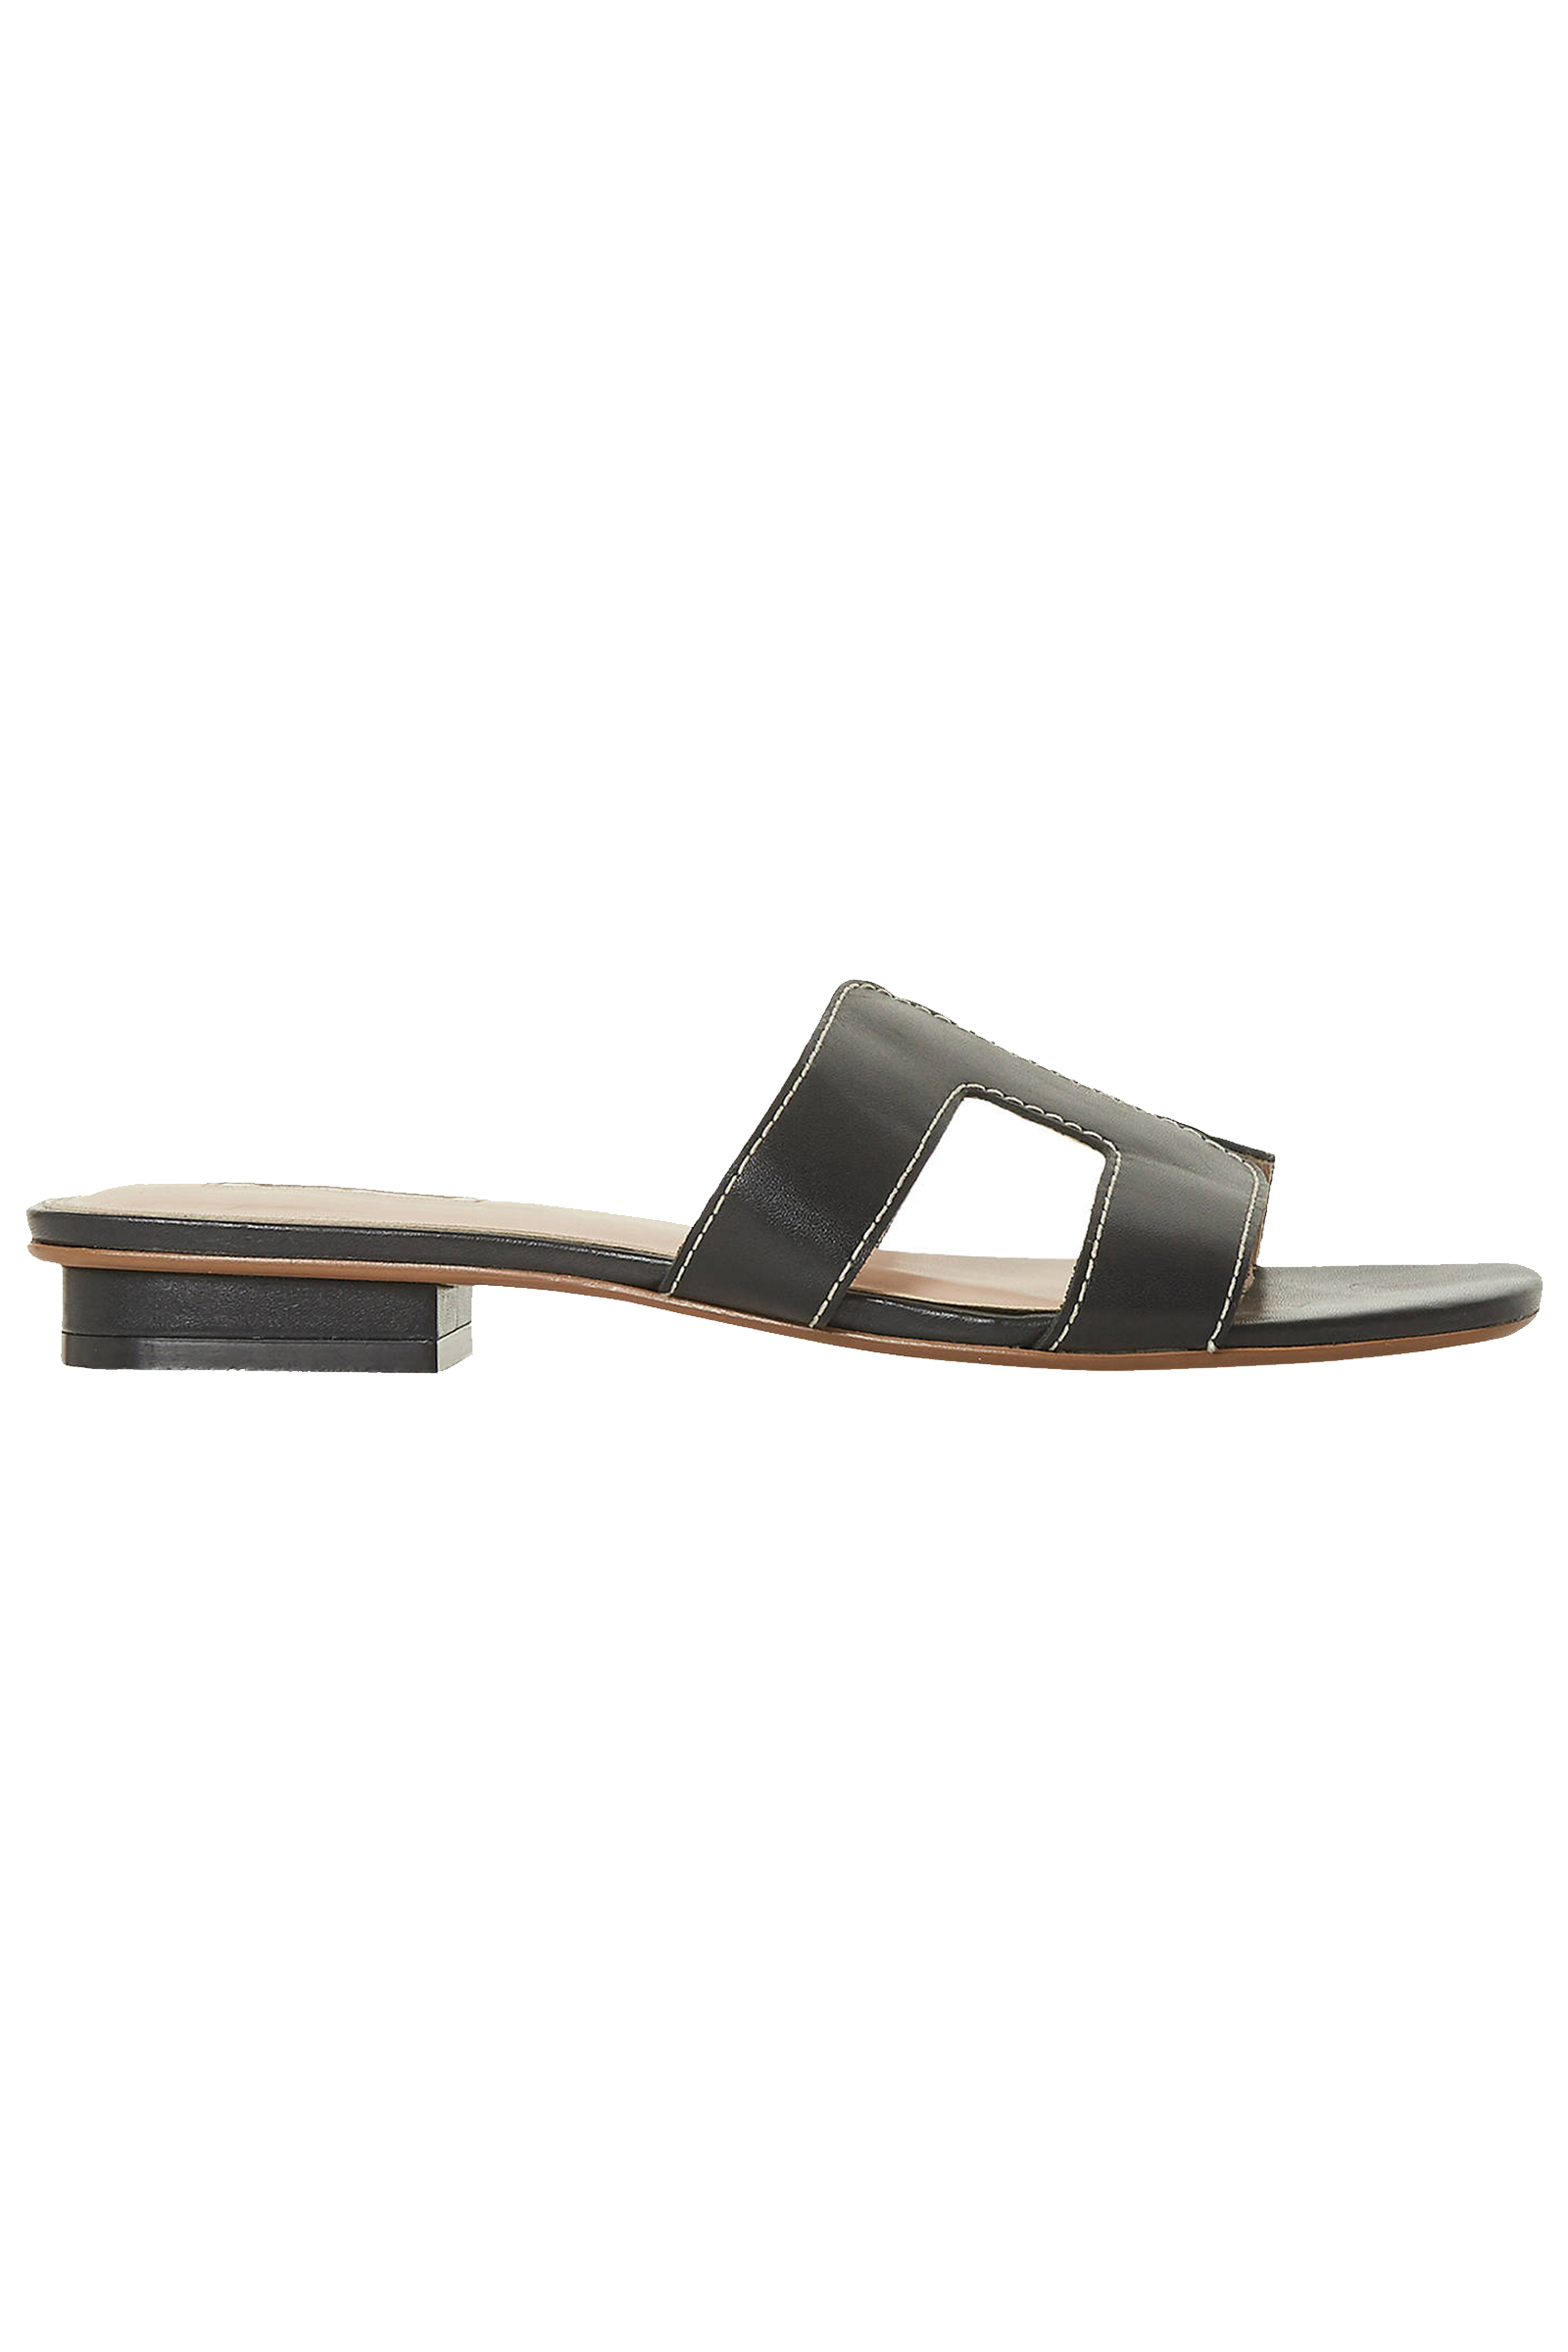 Dune-Loupe-Black-Leather-Sandals